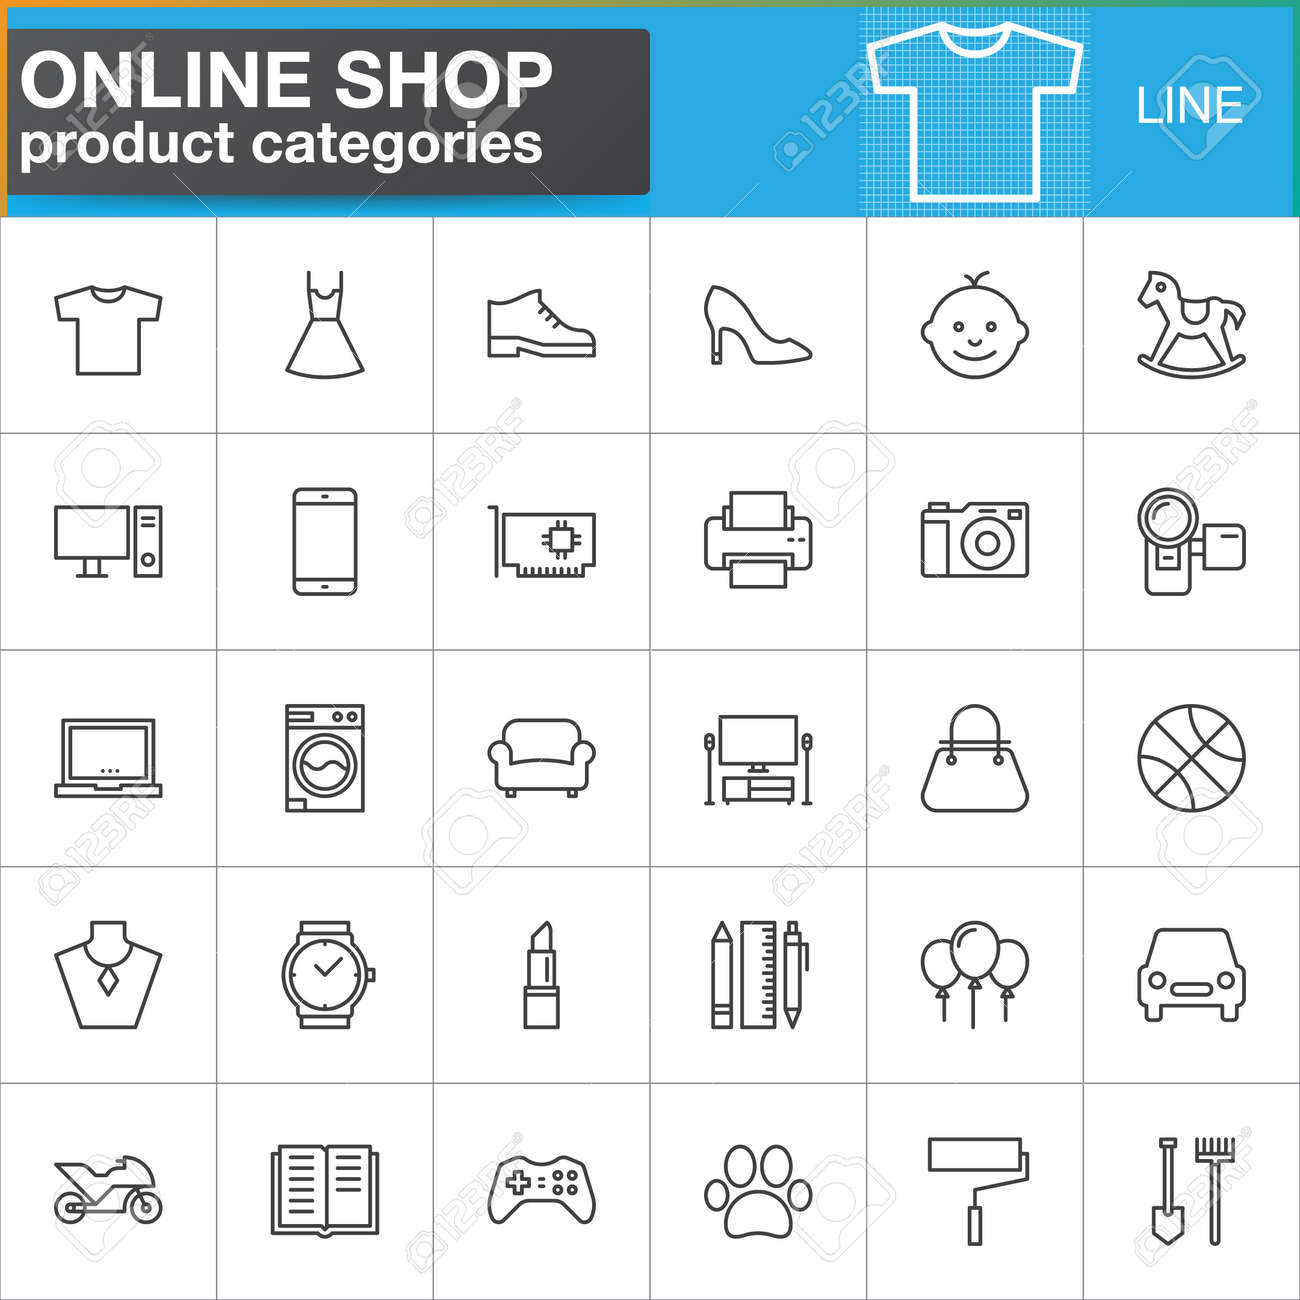 Online Pack Online Shopping Product Categories Line Icons Set Outline Vector